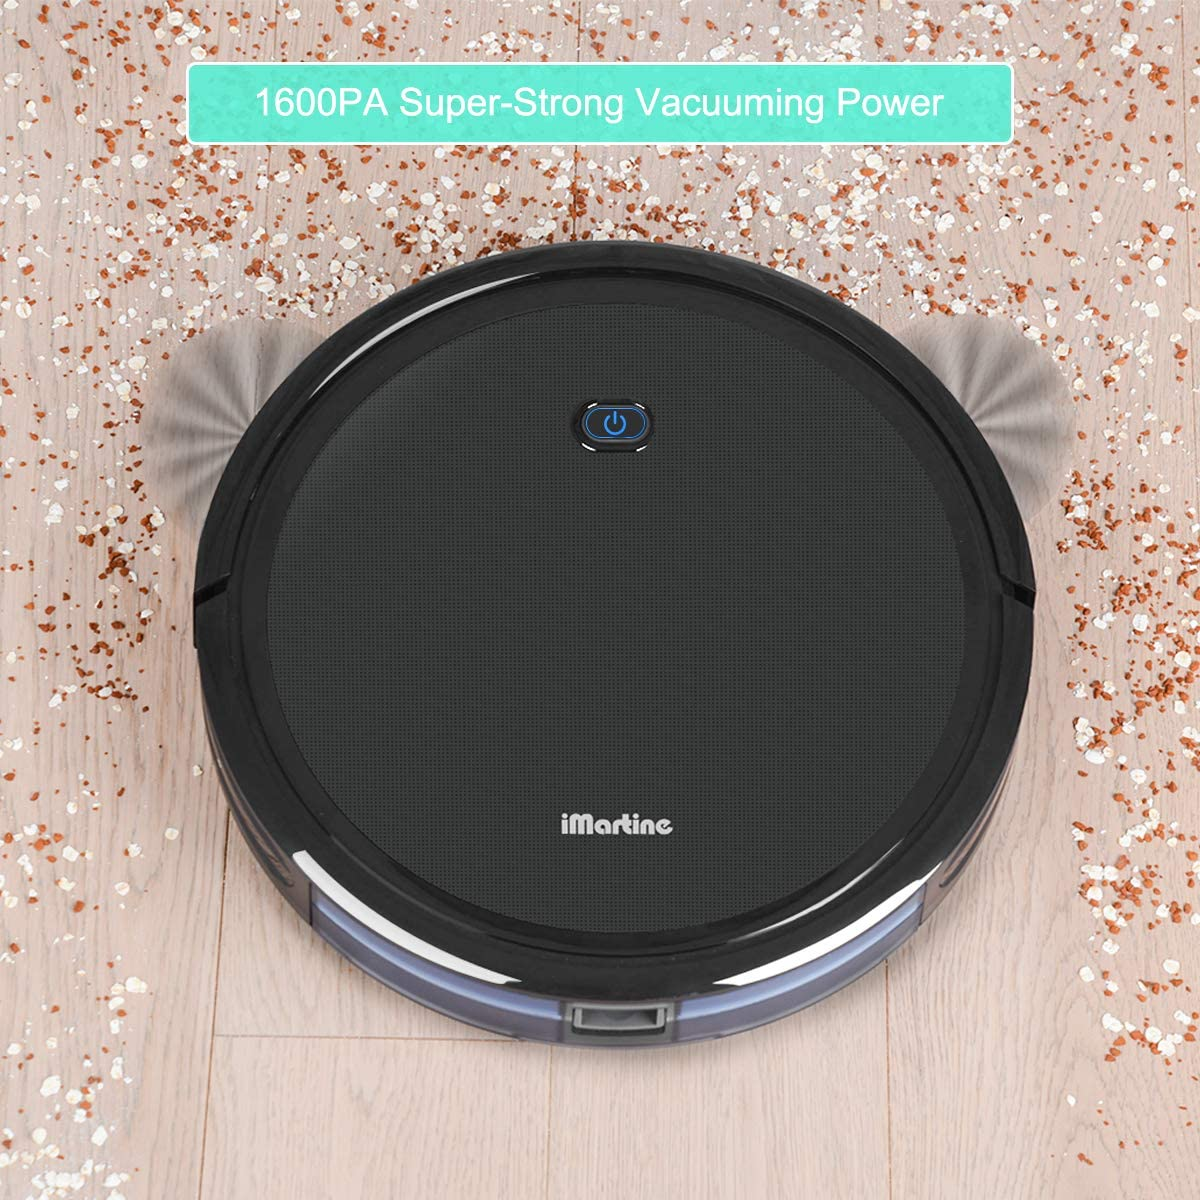 Robot Vacuum Cleaner, iMartine 1600Pa Strong Suction Robotic Vacuum Cleaner, Super-Thin Quiet, Up to 120mins Runtime Automatic Self-Charging Robot Vacuum for Pet Hair Hard Floor to Medium-Pile Carpet